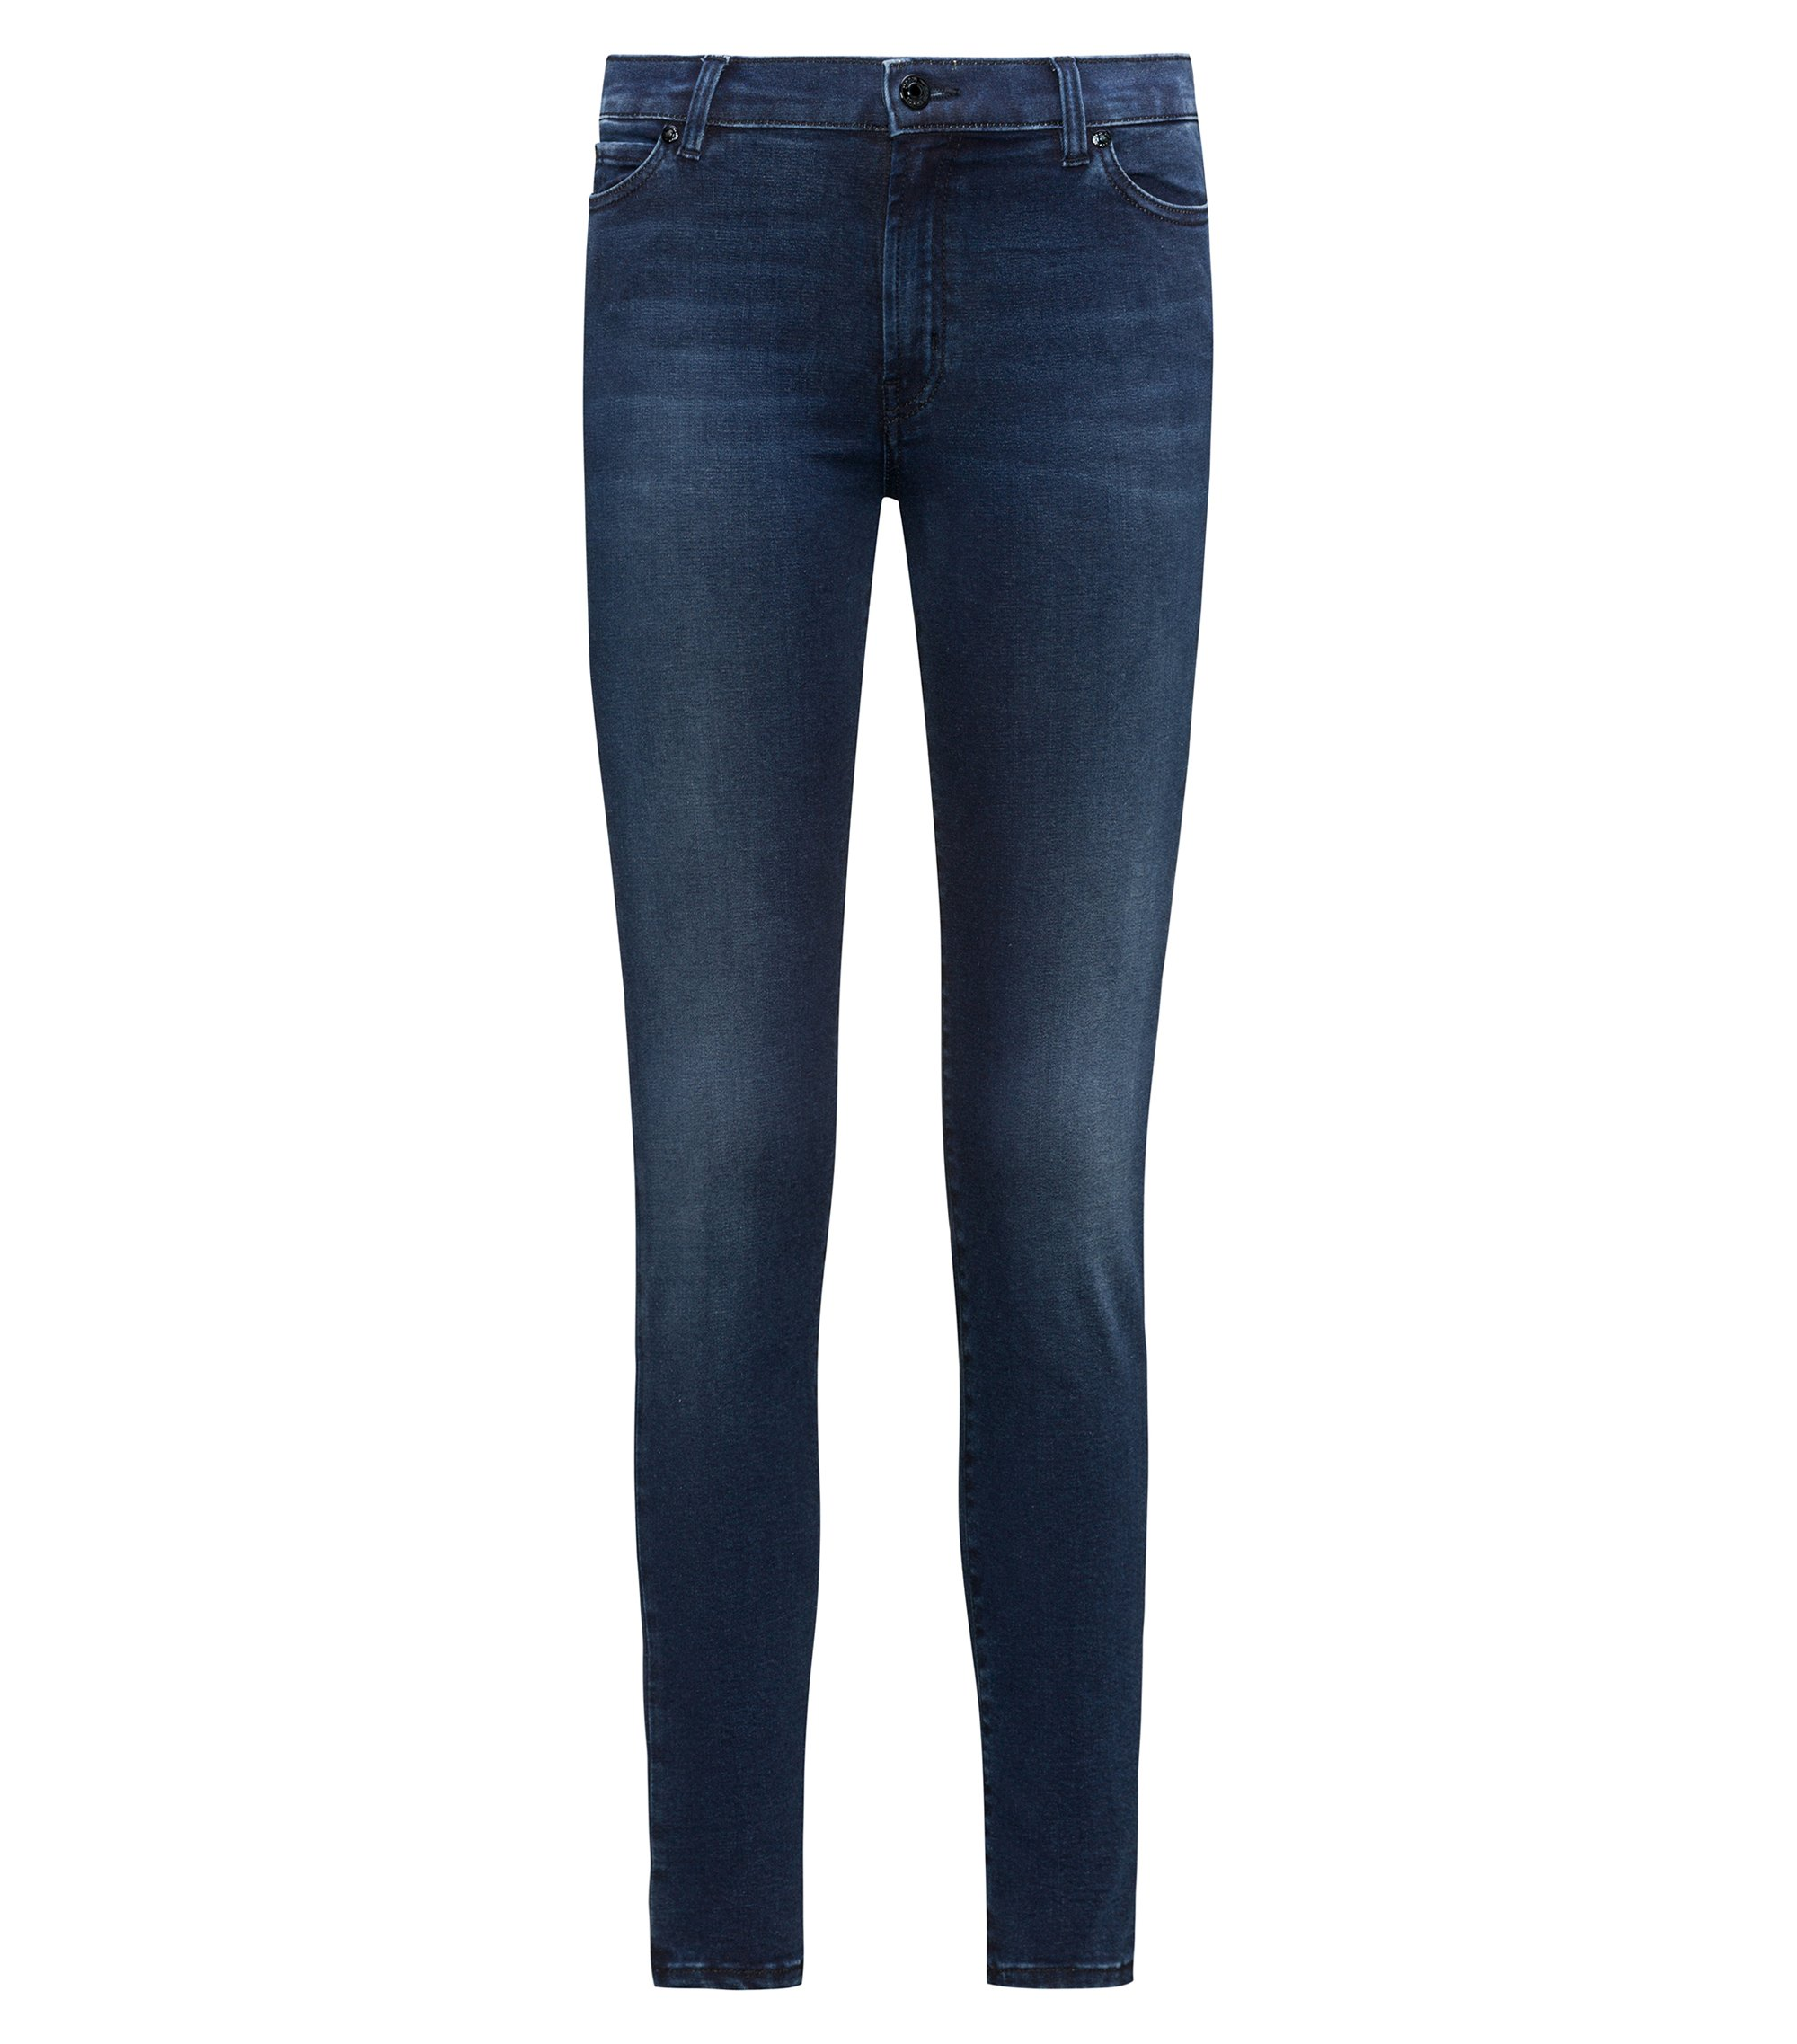 Jeans Extra Slim Fit bleu moyen en denim super stretch, Bleu foncé